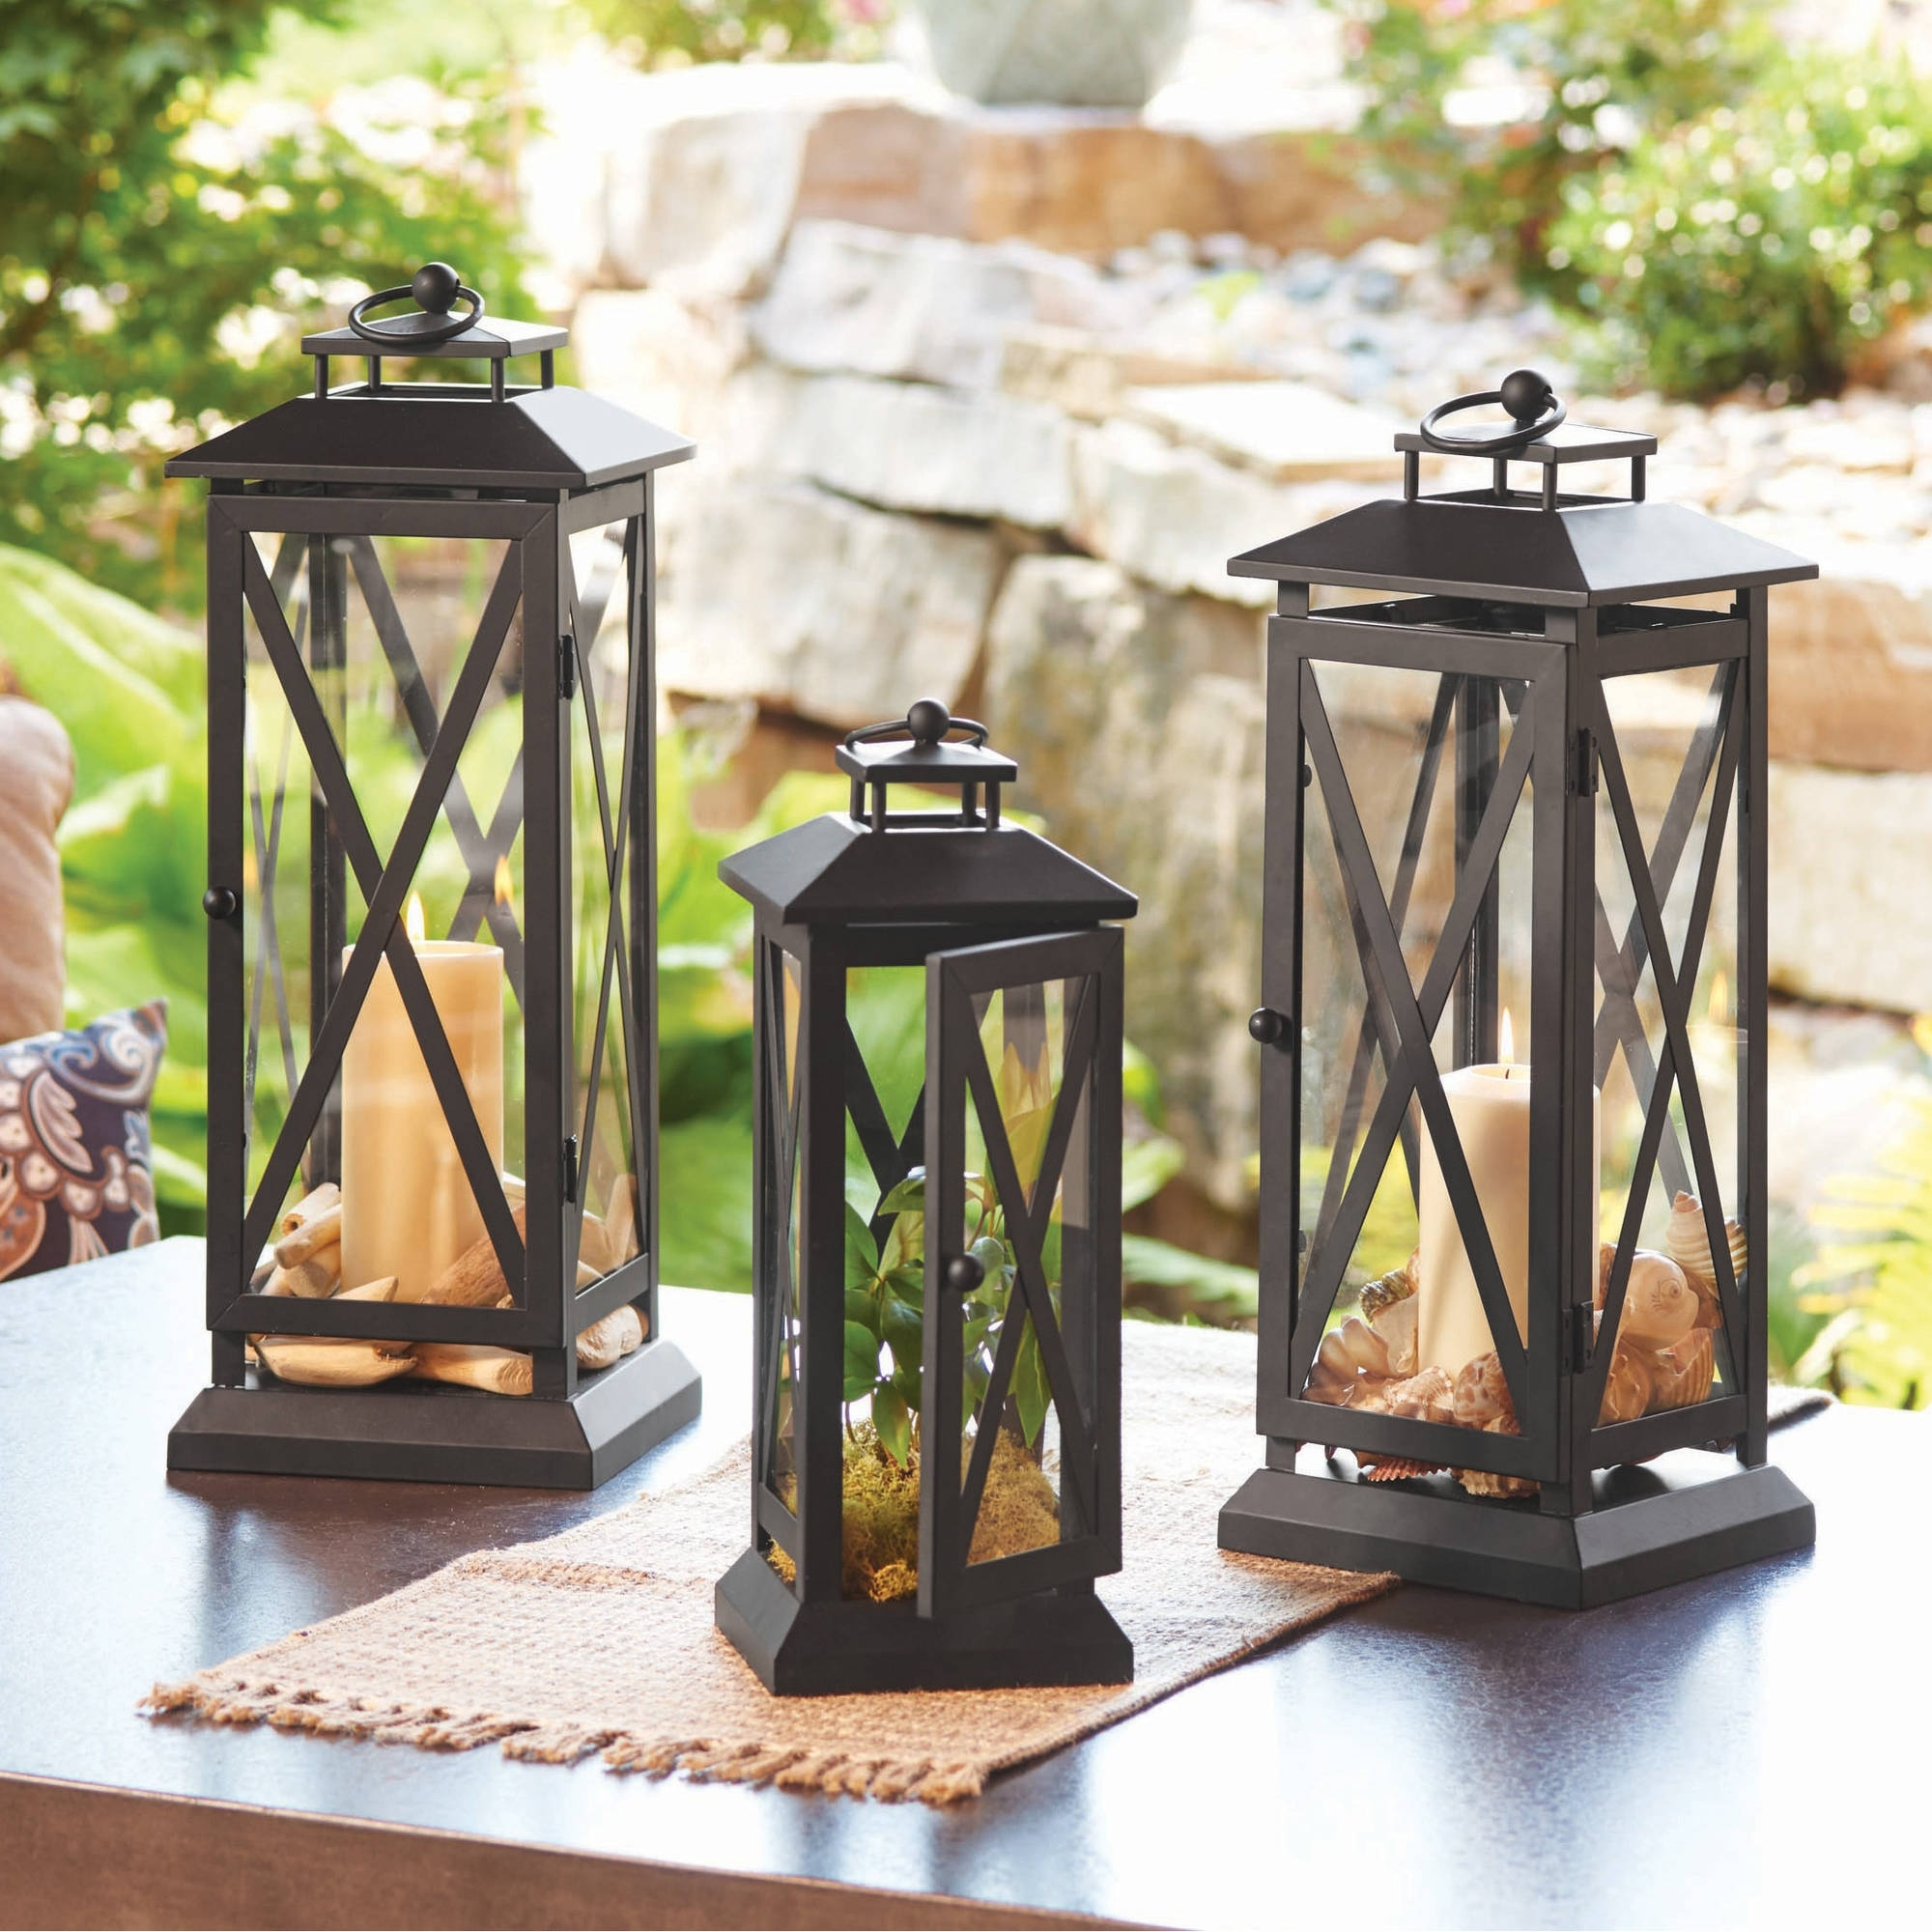 Fashionable Outdoor Lanterns Decors With Regard To Better Homes And Gardens Crossbar Metal Outdoor Lantern – Walmart (View 2 of 20)